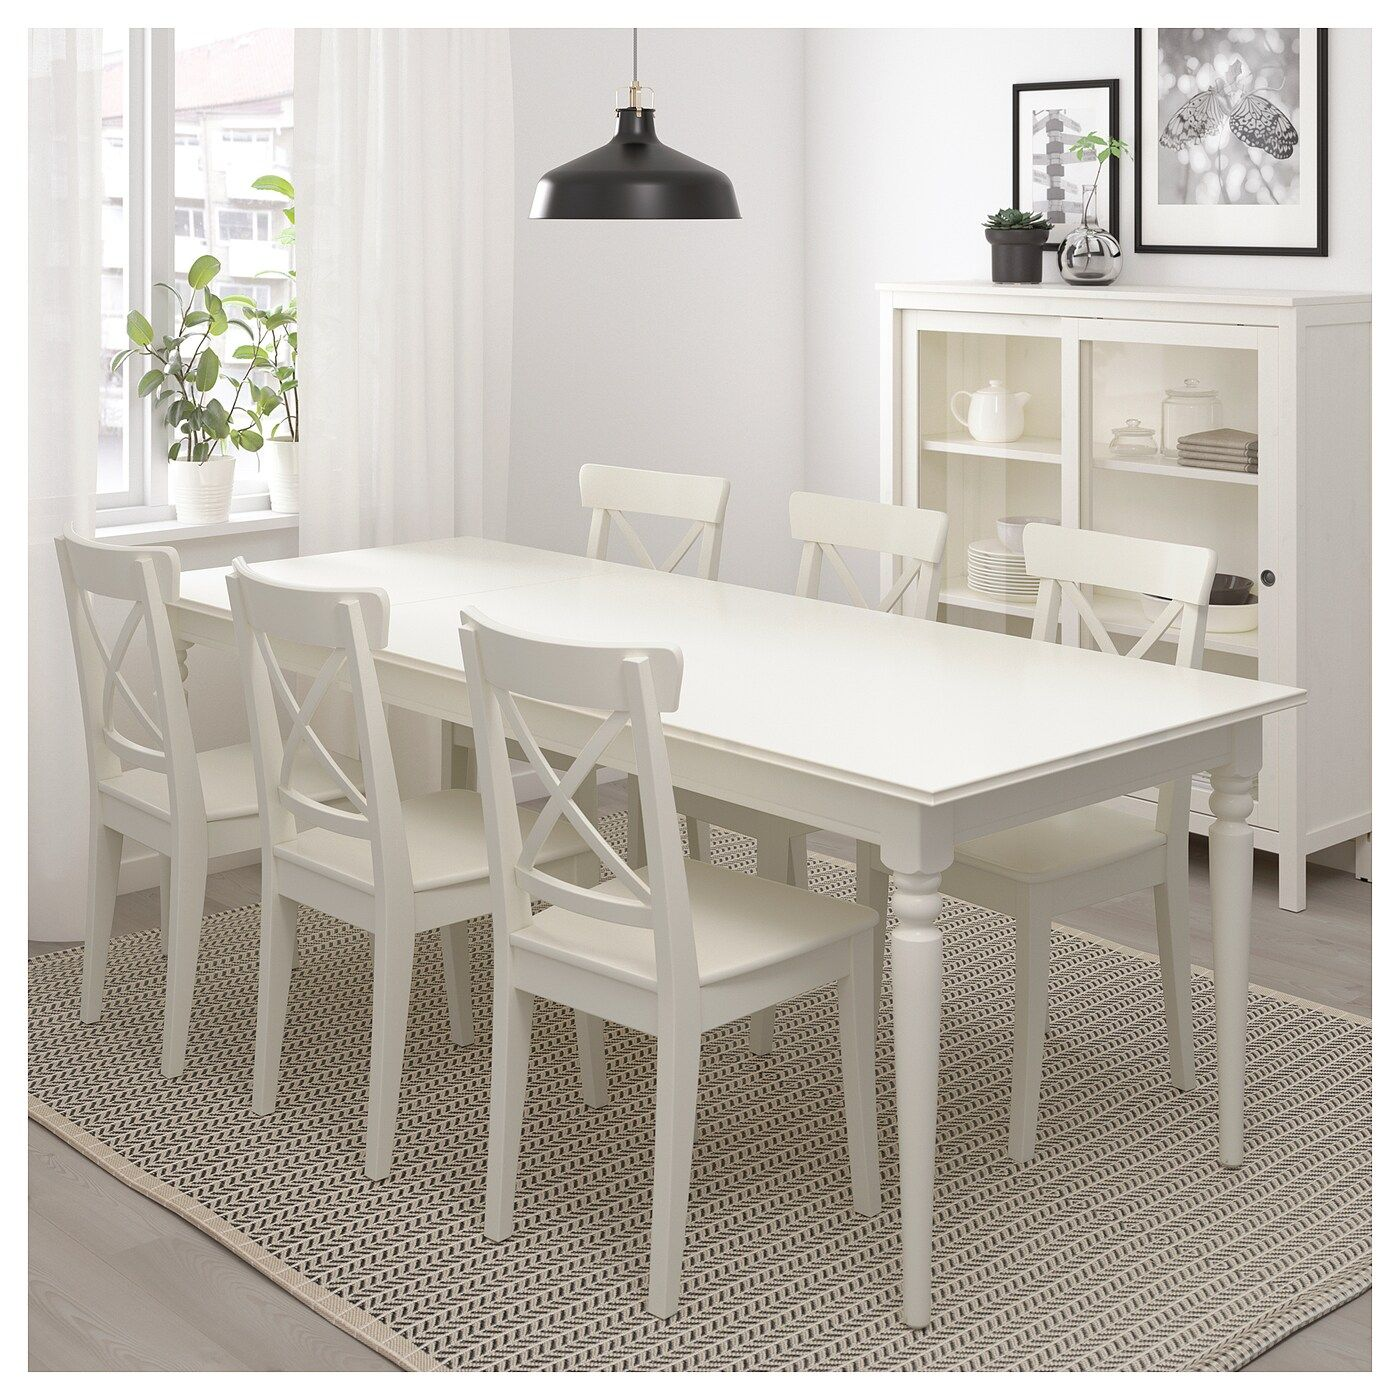 Ingatorp Extendable Table White 61 84 5 8x34 1 4 In 2020 Table Dining Room Walls Furniture